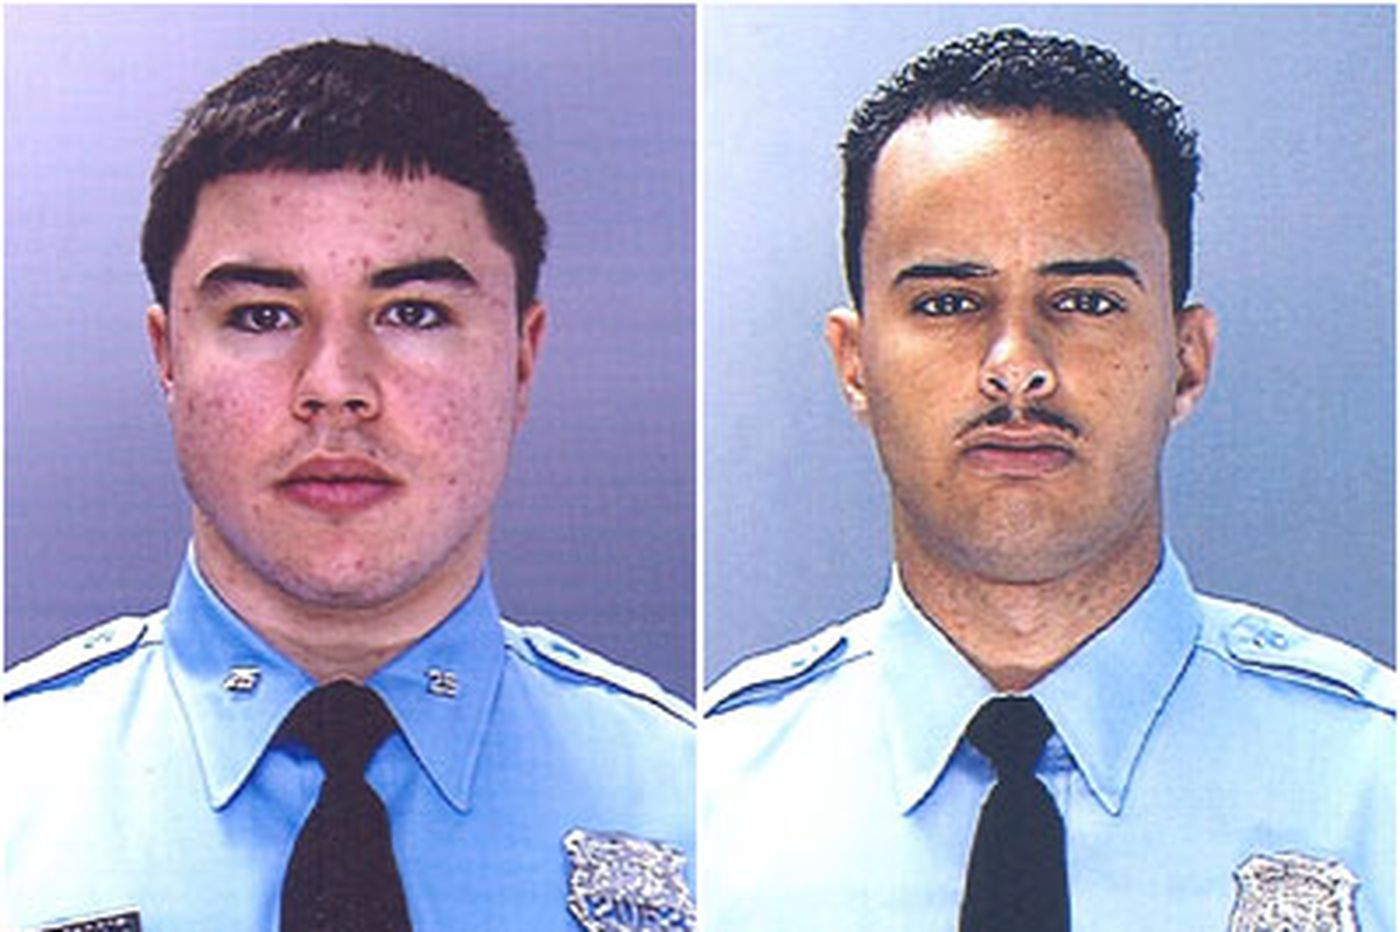 Philly officers in 25th District probe were not sting targets